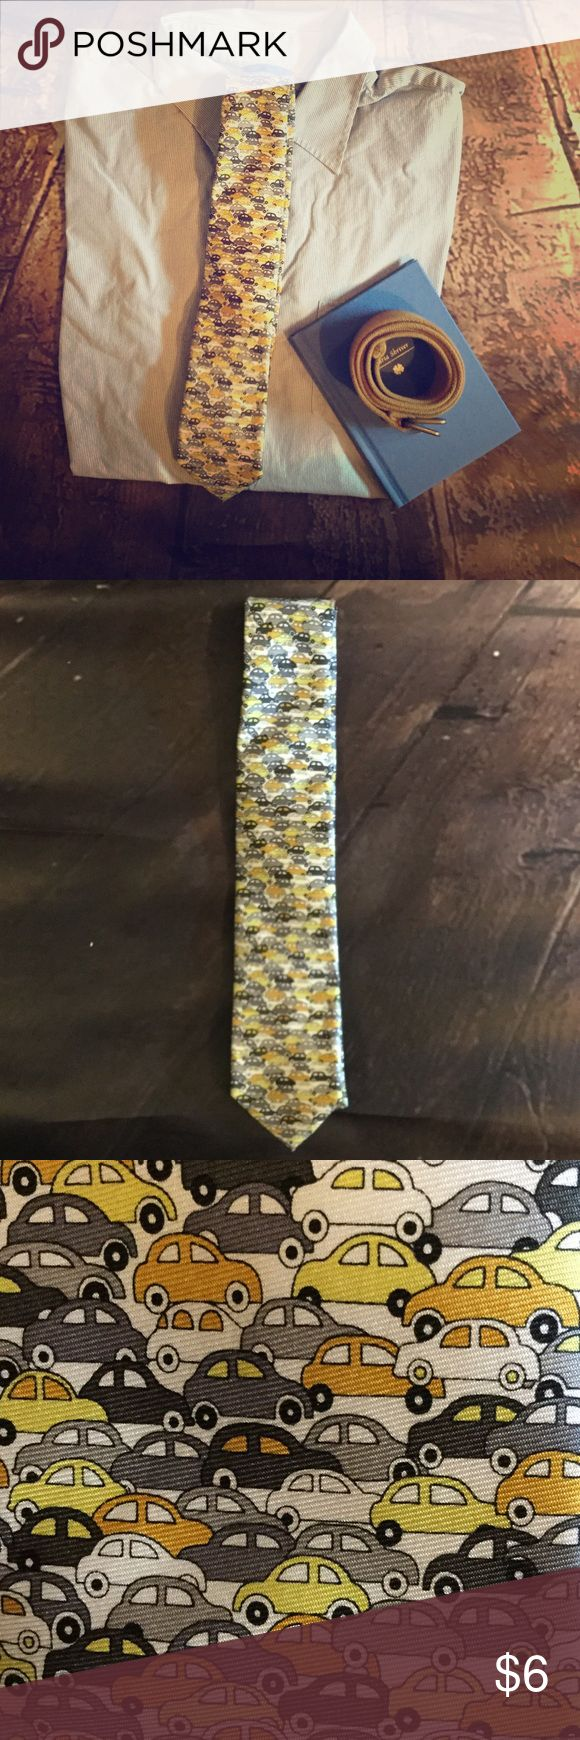 Lot of 2 Men's Ties ONE SIZE Lot of 2 Men's Ties. Design partnership of LIBERTY for Target collection & Merona tie. SIZE: One Size. FABRIC: Silk. CONDITION: Worn. No Tears. No Holes. Slight wrinkles (Can easily be steamed/ironed out) 🤵 👨‍💻 $$$ Bundle! NOTE:  Lot of 2 ties are for sale, all other items are props. Liberty for Target Accessories Ties